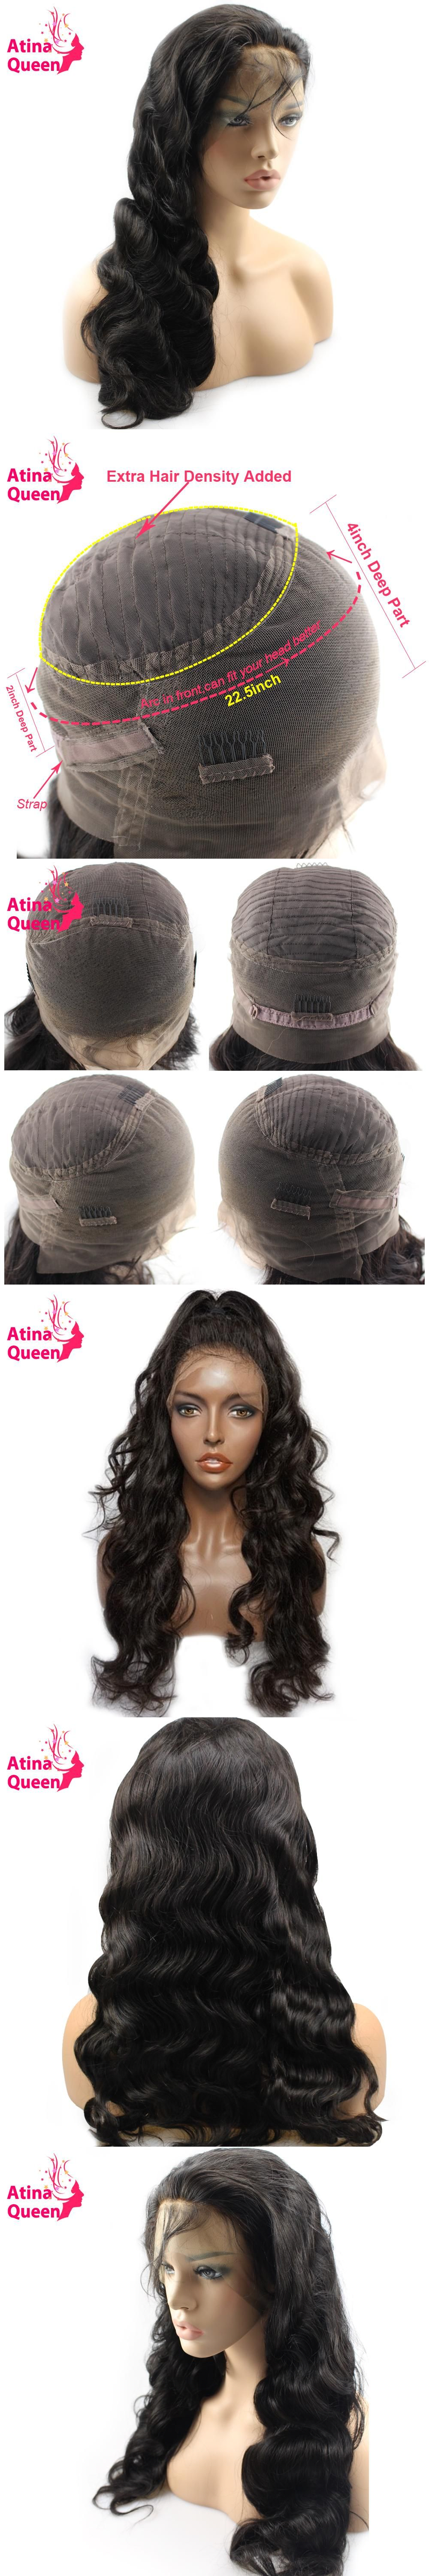 Atina Queen 180 Density 360 Lace Frontal Wig with Baby Hair Body